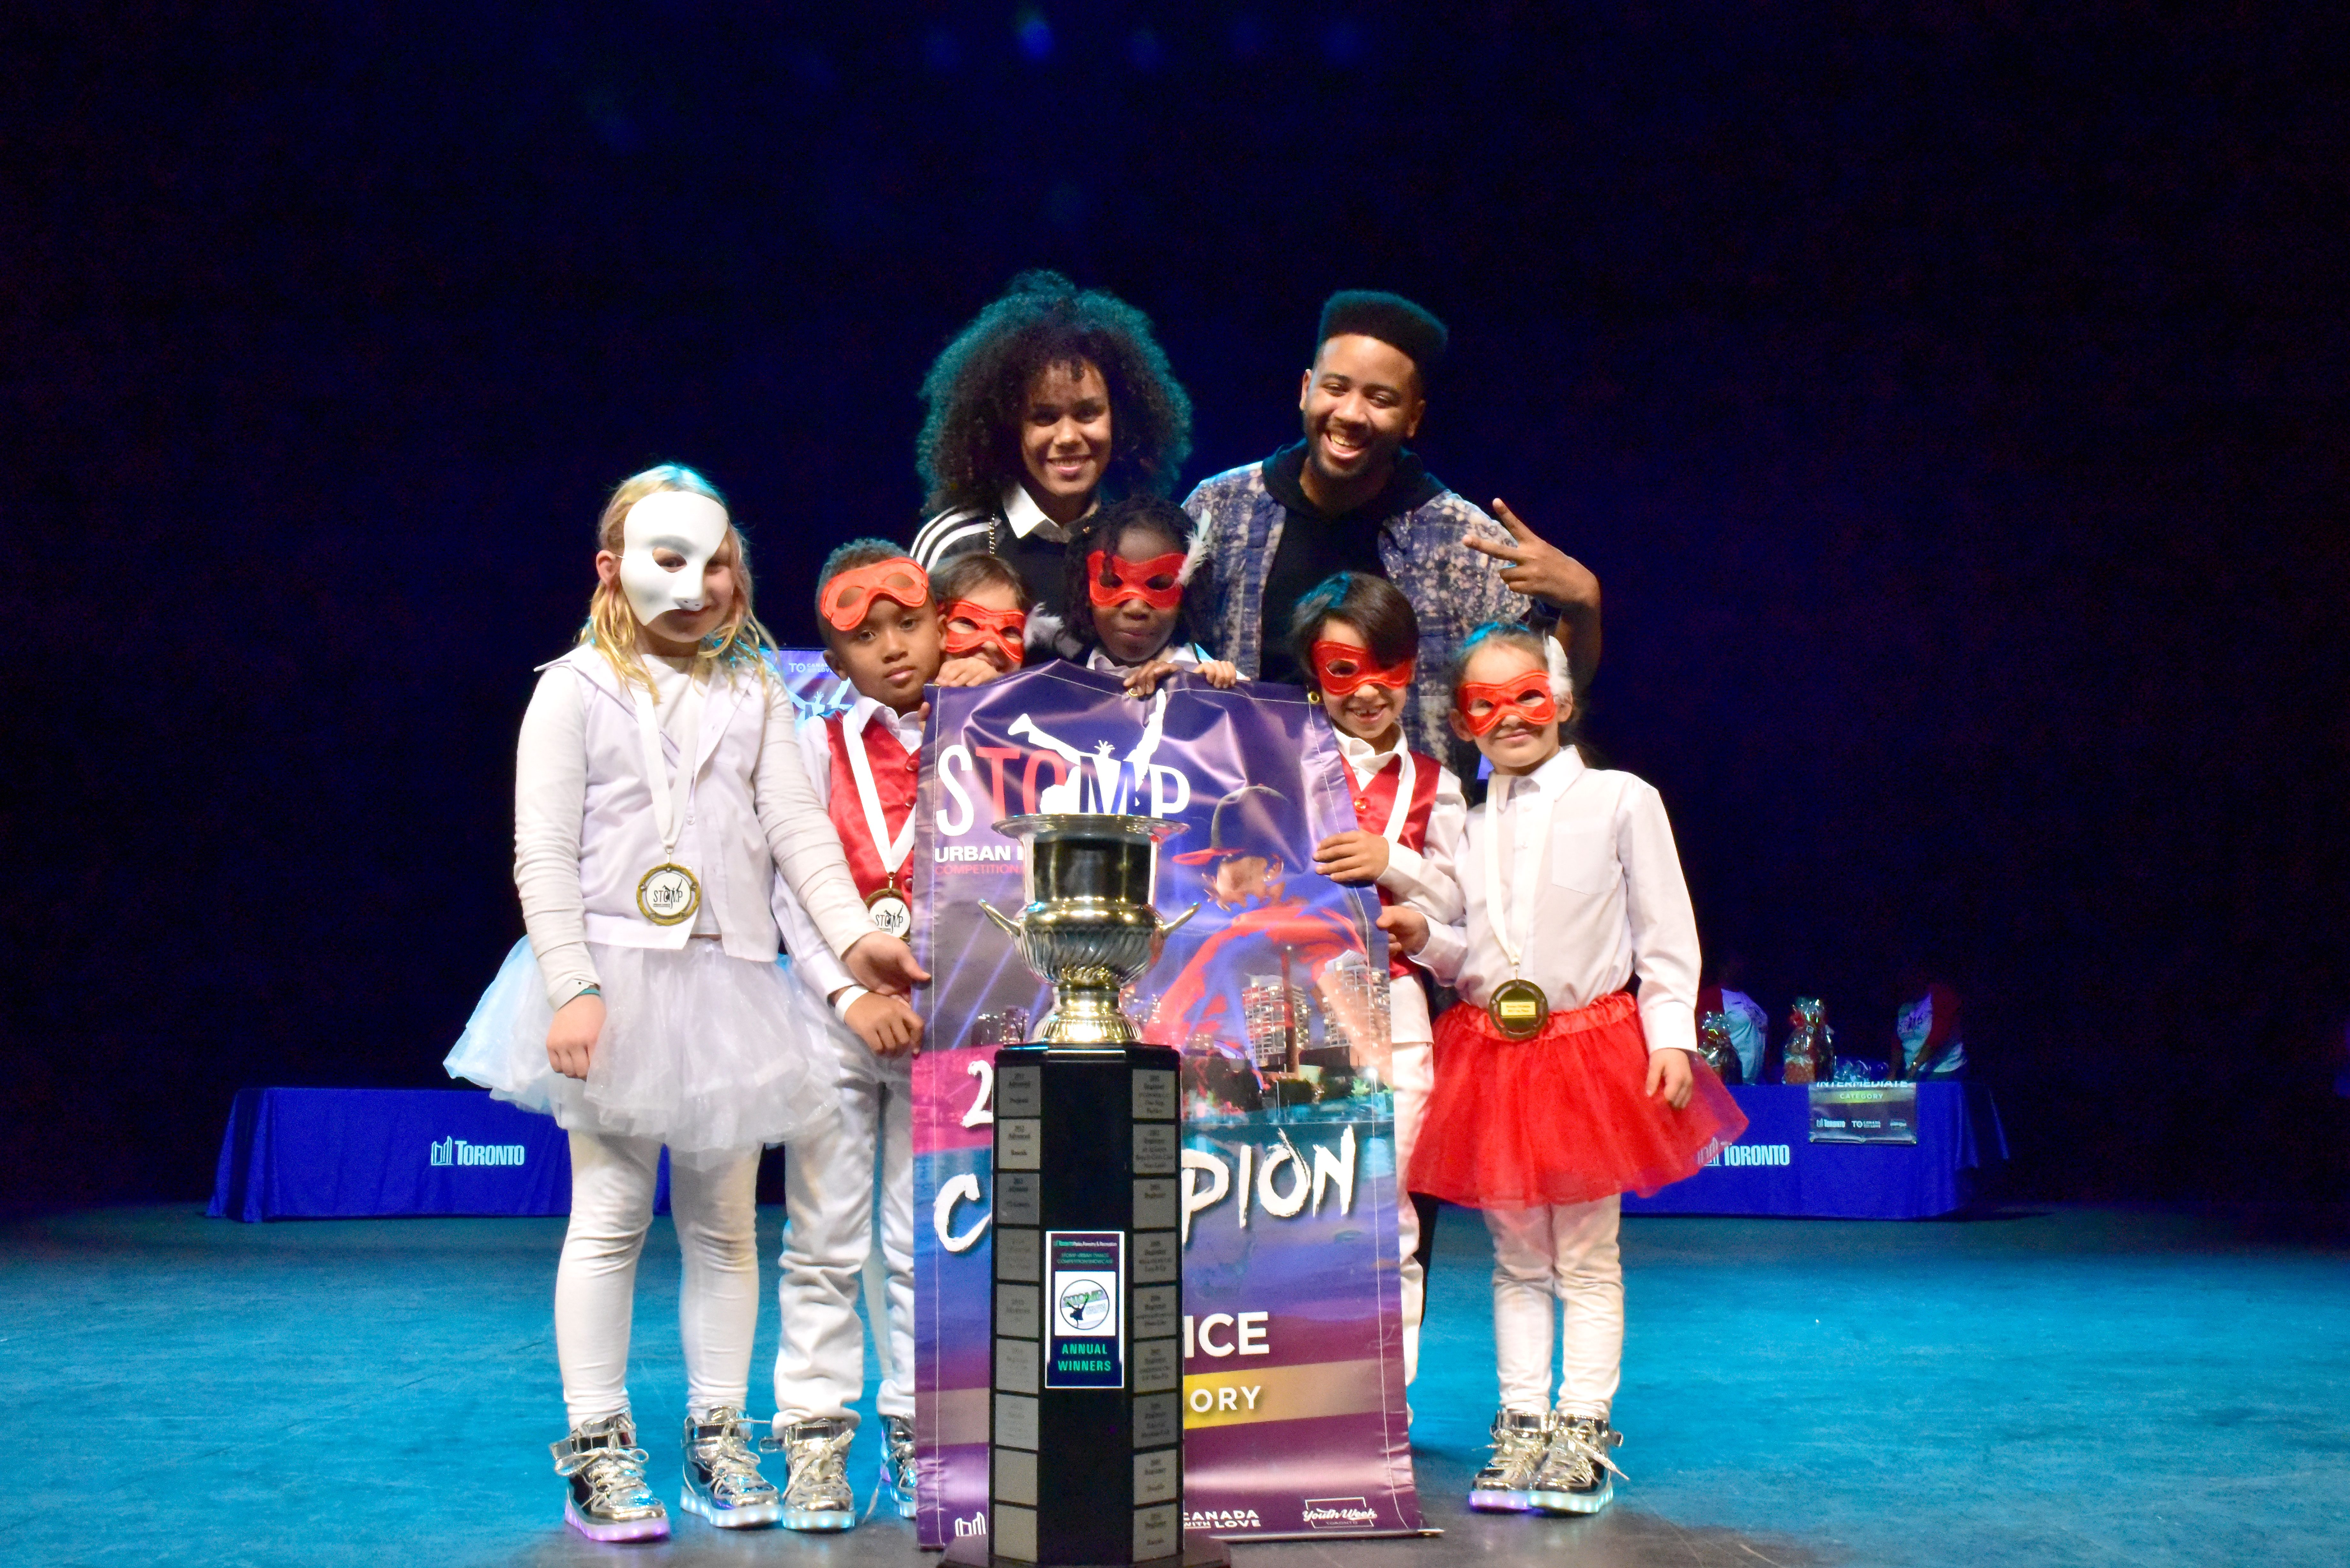 STOMP 2017 Novice dance group winners